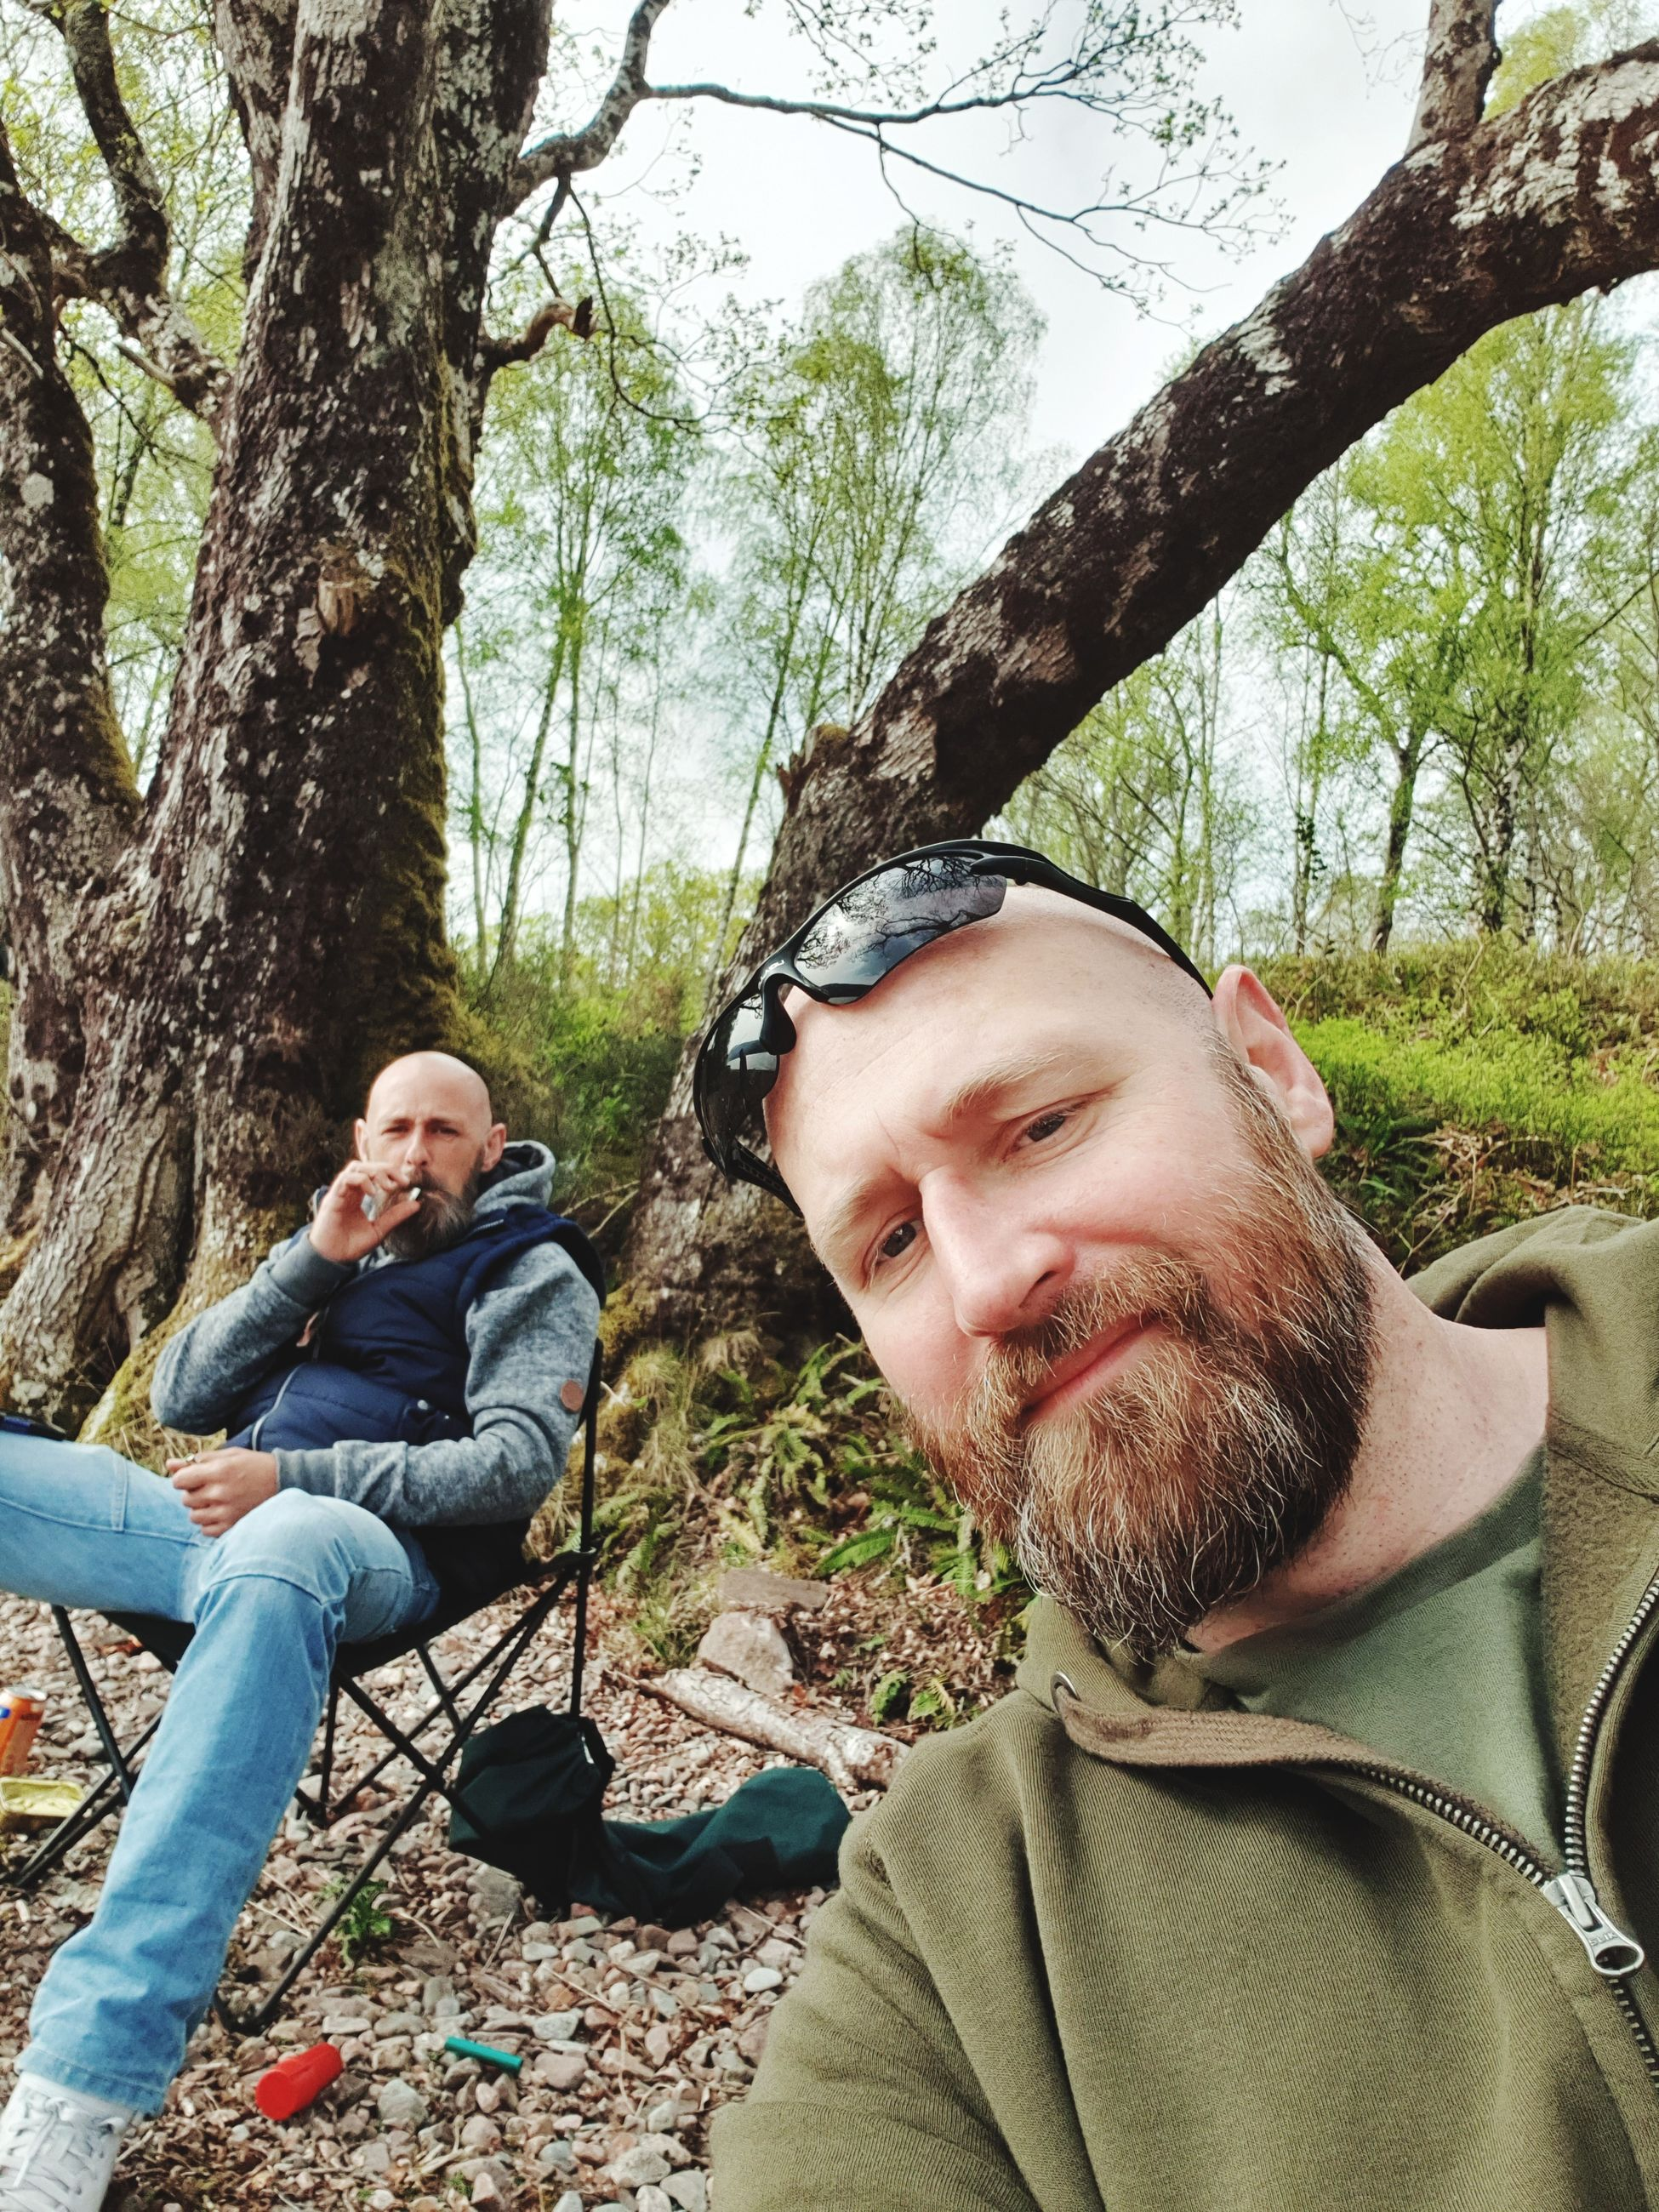 tree, plant, men, males, real people, sitting, mid adult, leisure activity, mid adult men, facial hair, lifestyles, adult, beard, forest, casual clothing, nature, smiling, people, young men, mature men, mature adult, outdoors